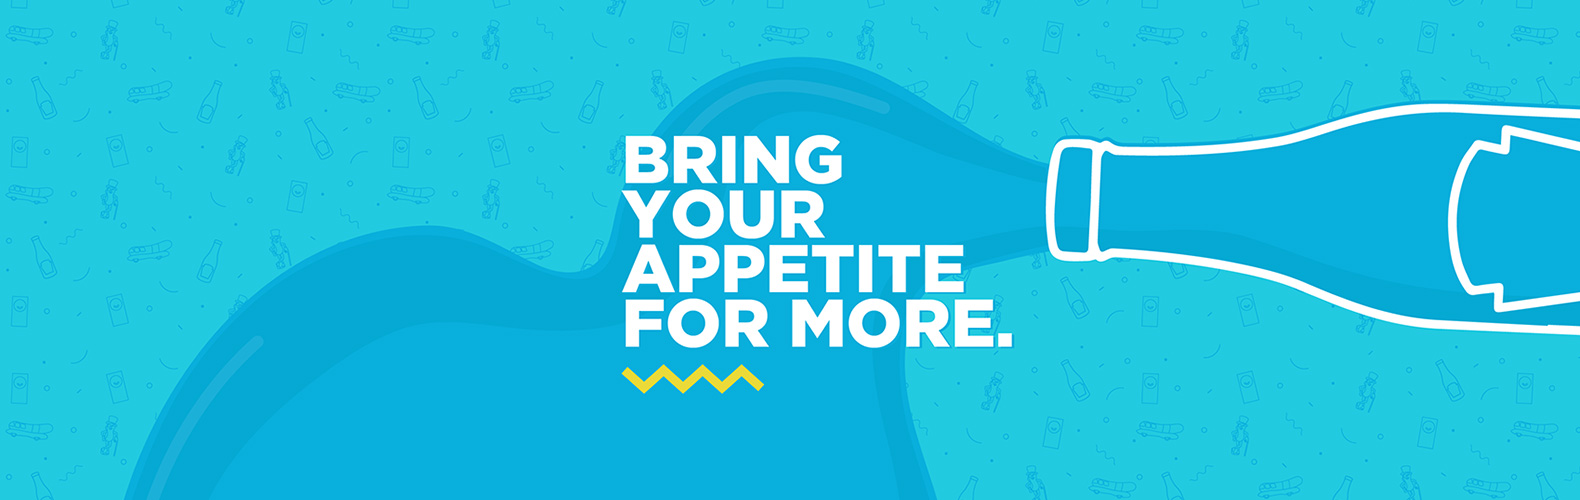 Kraft Heinz   Bring your appetite for more